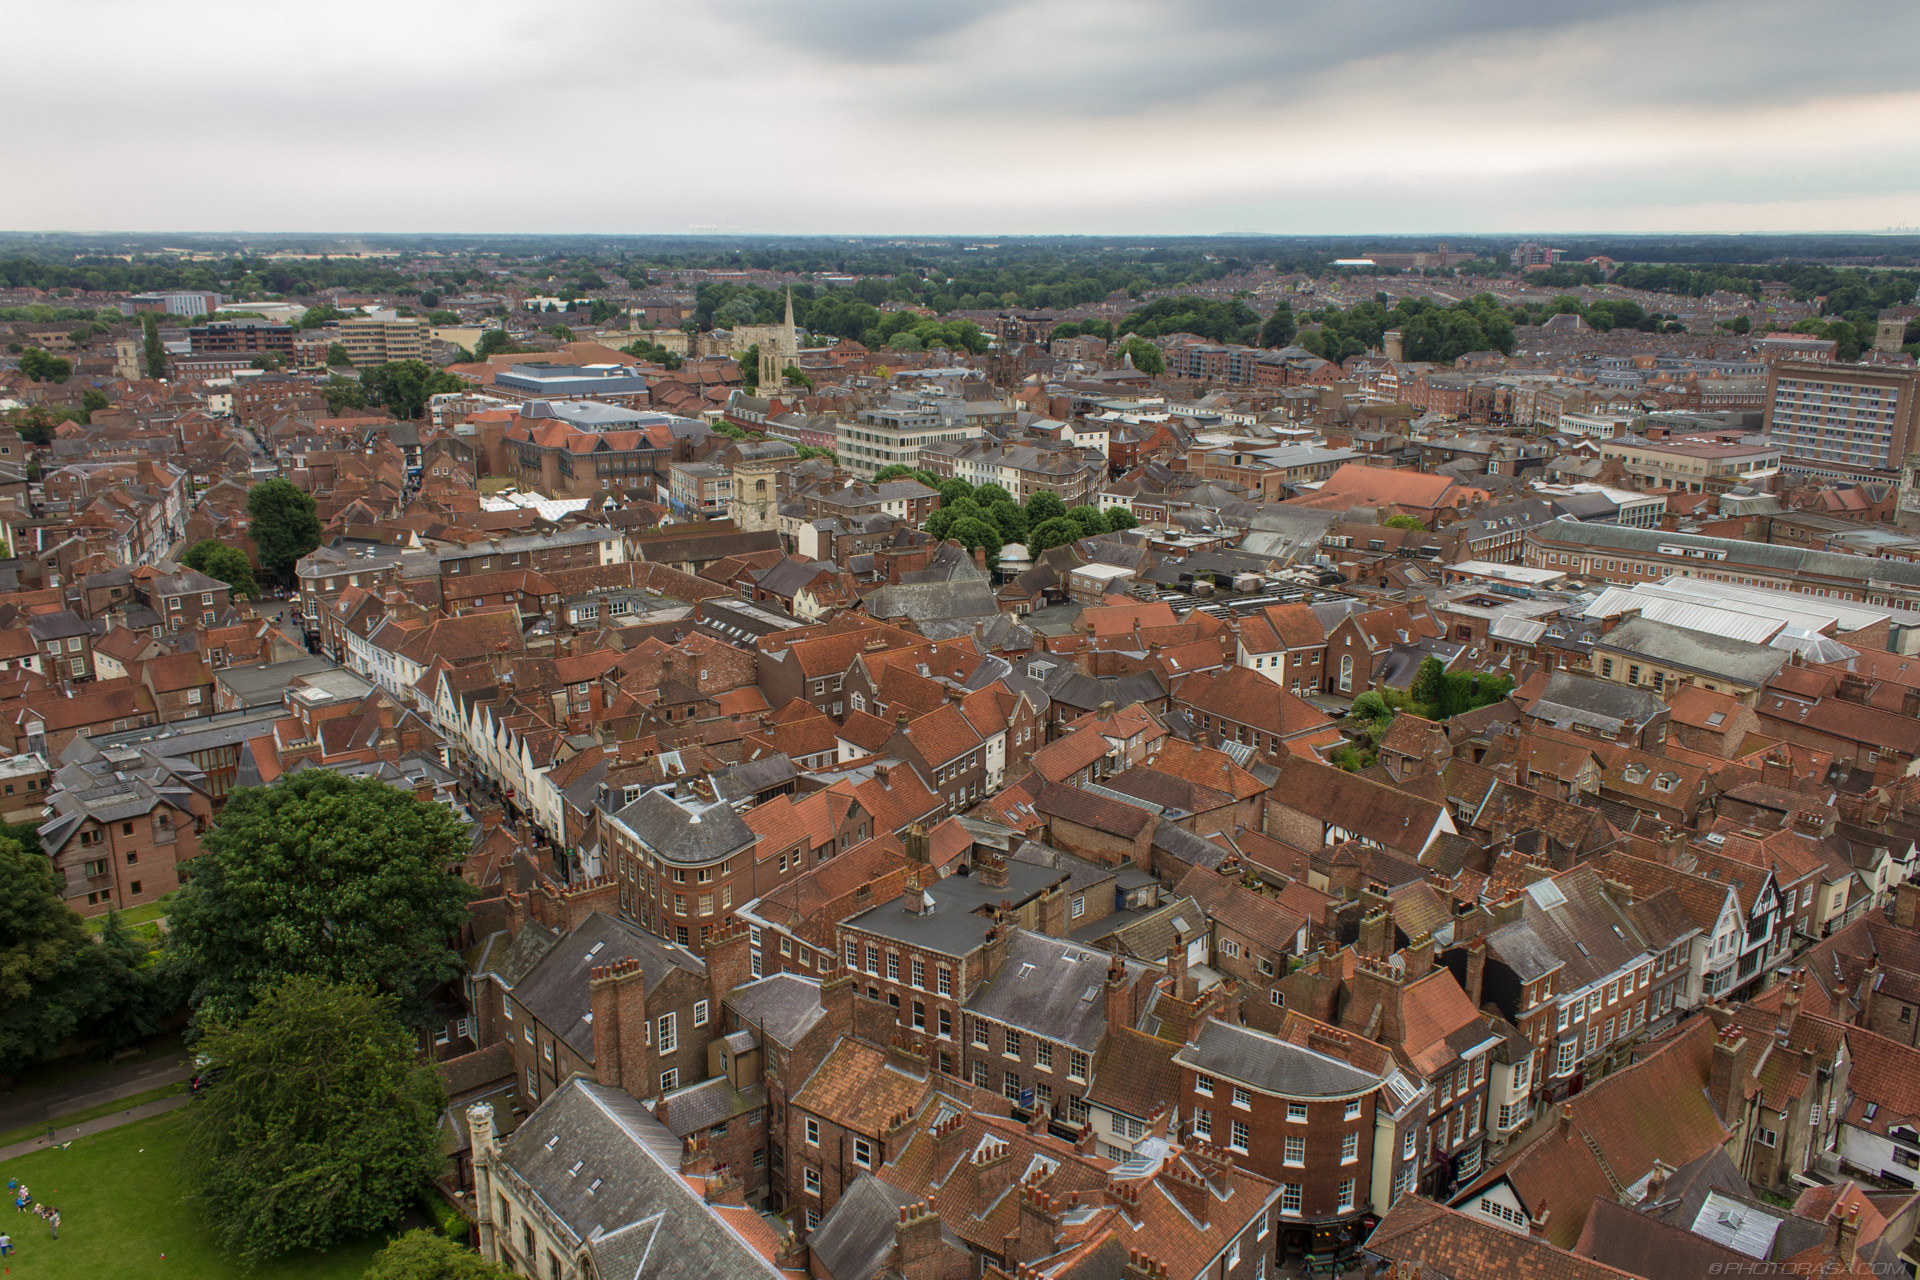 https://photorasa.com/yorkminster-cathedral/view-of-york-form-yorkminster-tower/